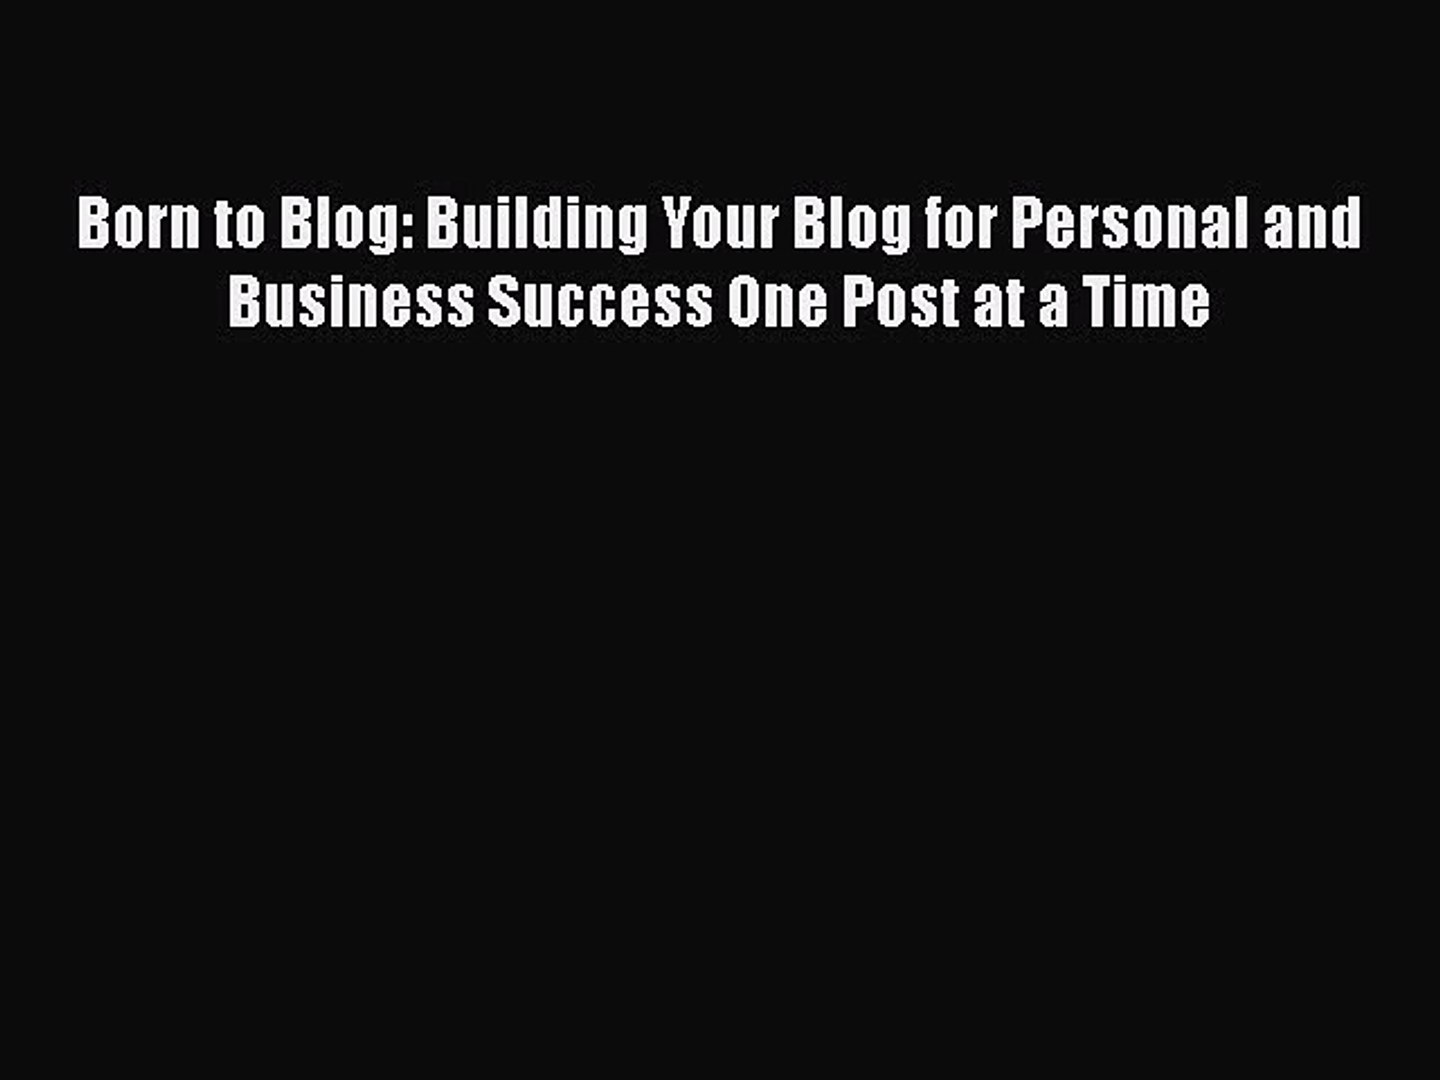 [PDF] Born to Blog: Building Your Blog for Personal and Business Success One Post at a Time